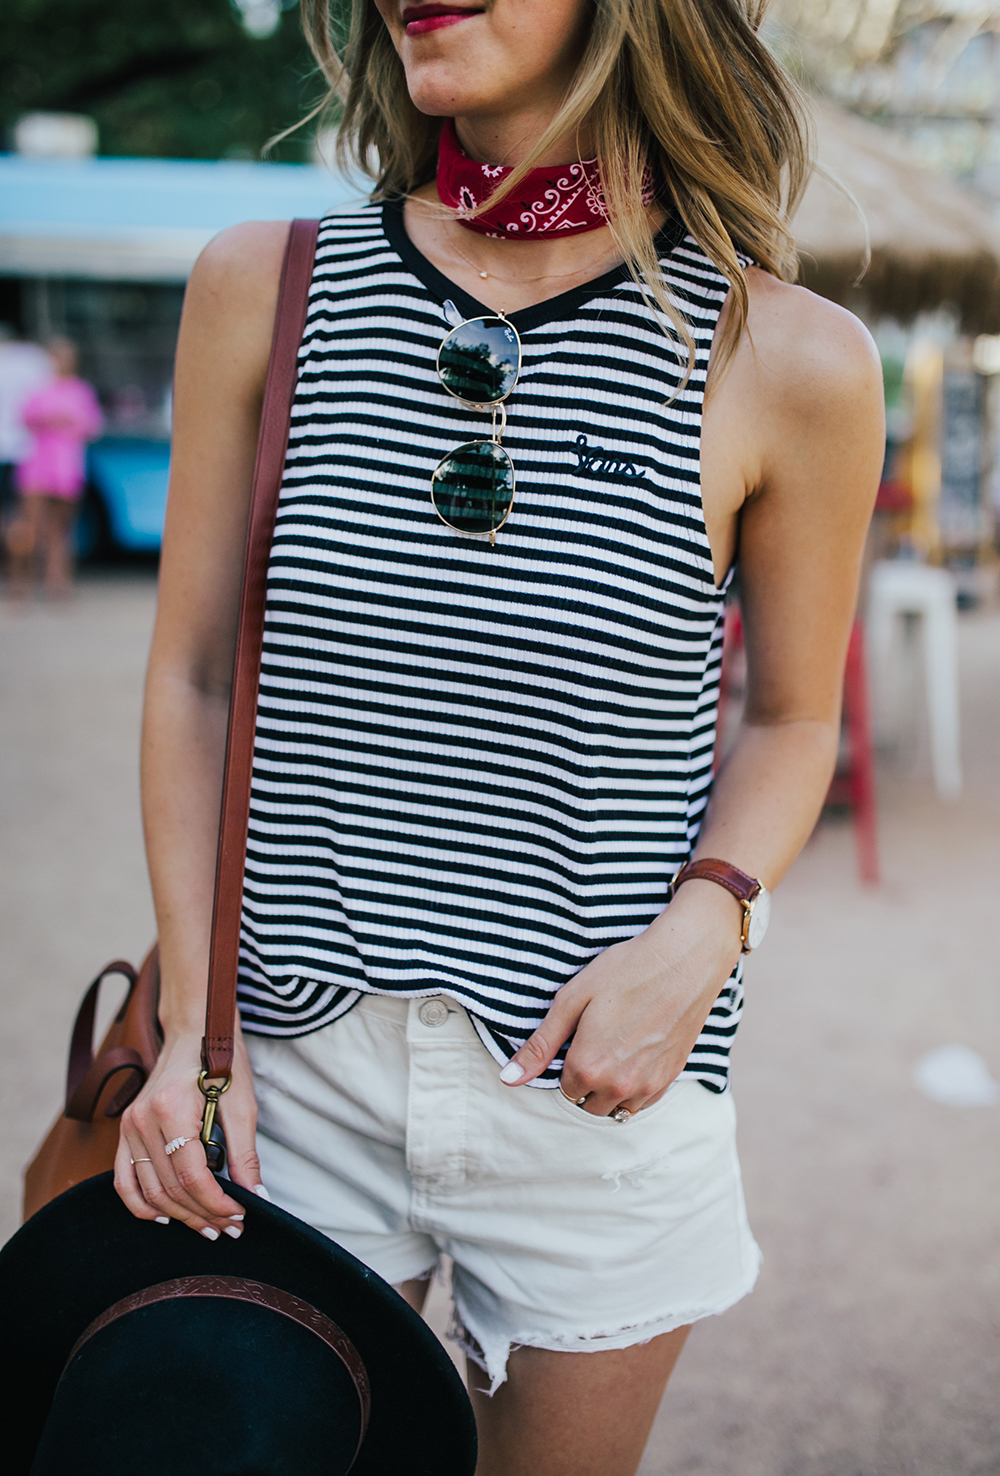 livvyland-blog-olivia-watson-stripe-vans-tank-top-white-cutoff-shorts-pacsun-barton-springs-road-summer-style-2